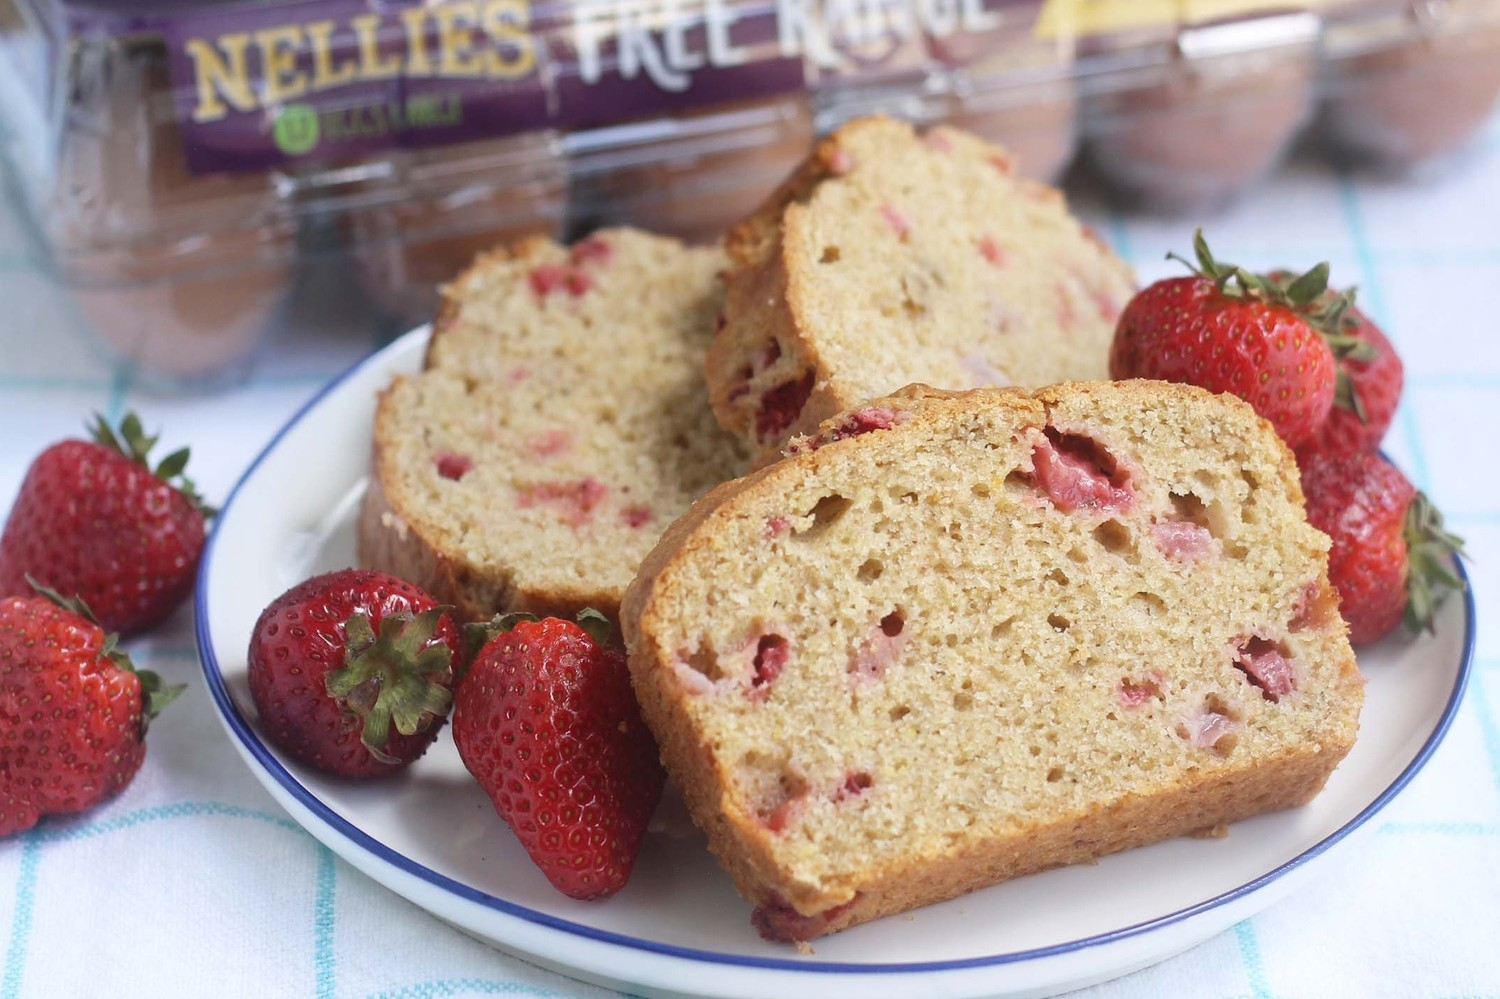 Super moist and kid-friendly strawberry banana quick bread recipe made with fresh strawberry pieces. | nelliesfreerange.com